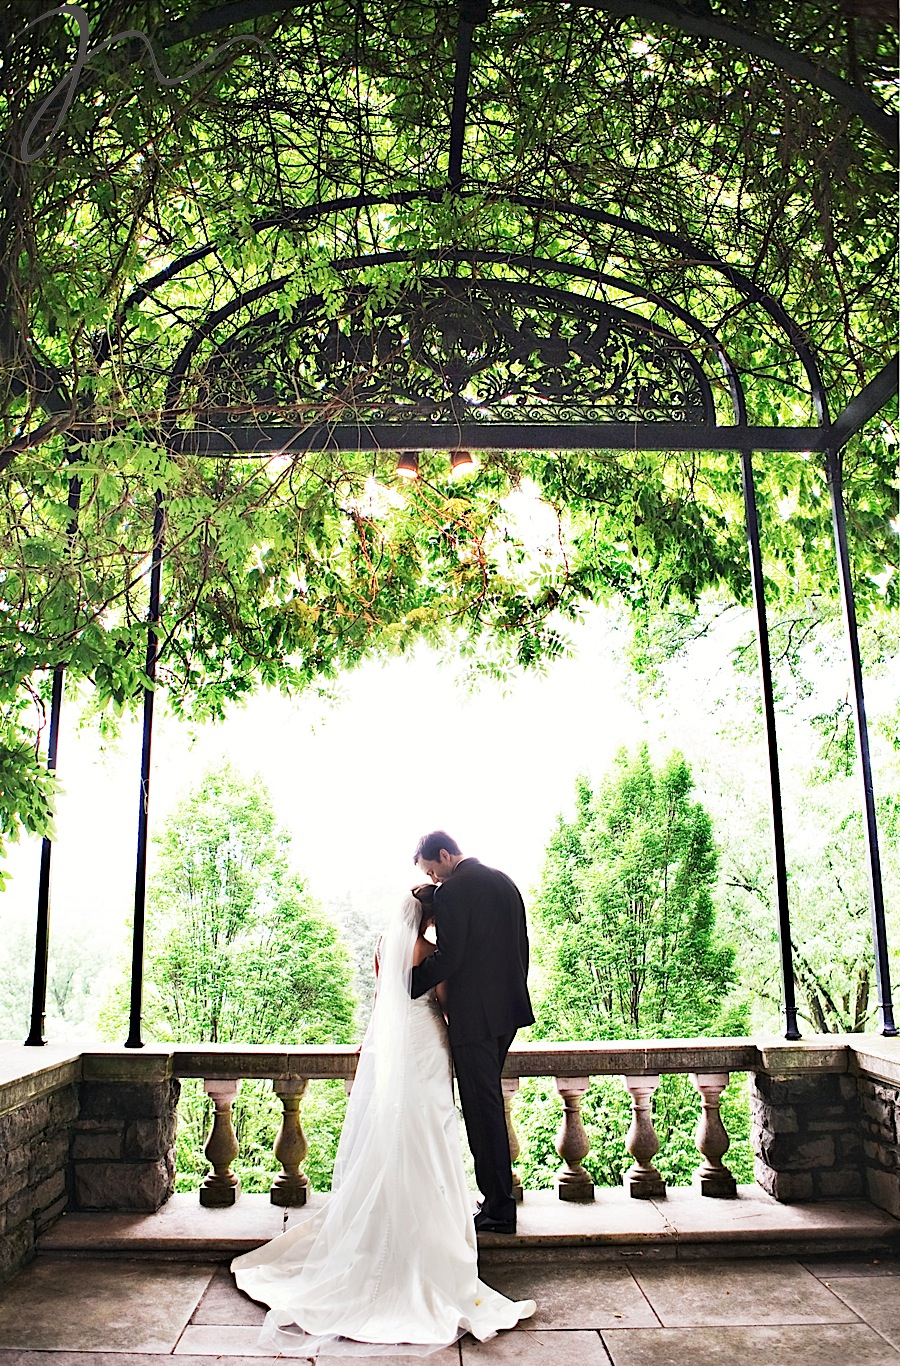 Carla Josh Cheekwood Botanical Gardens Wedding By Joy